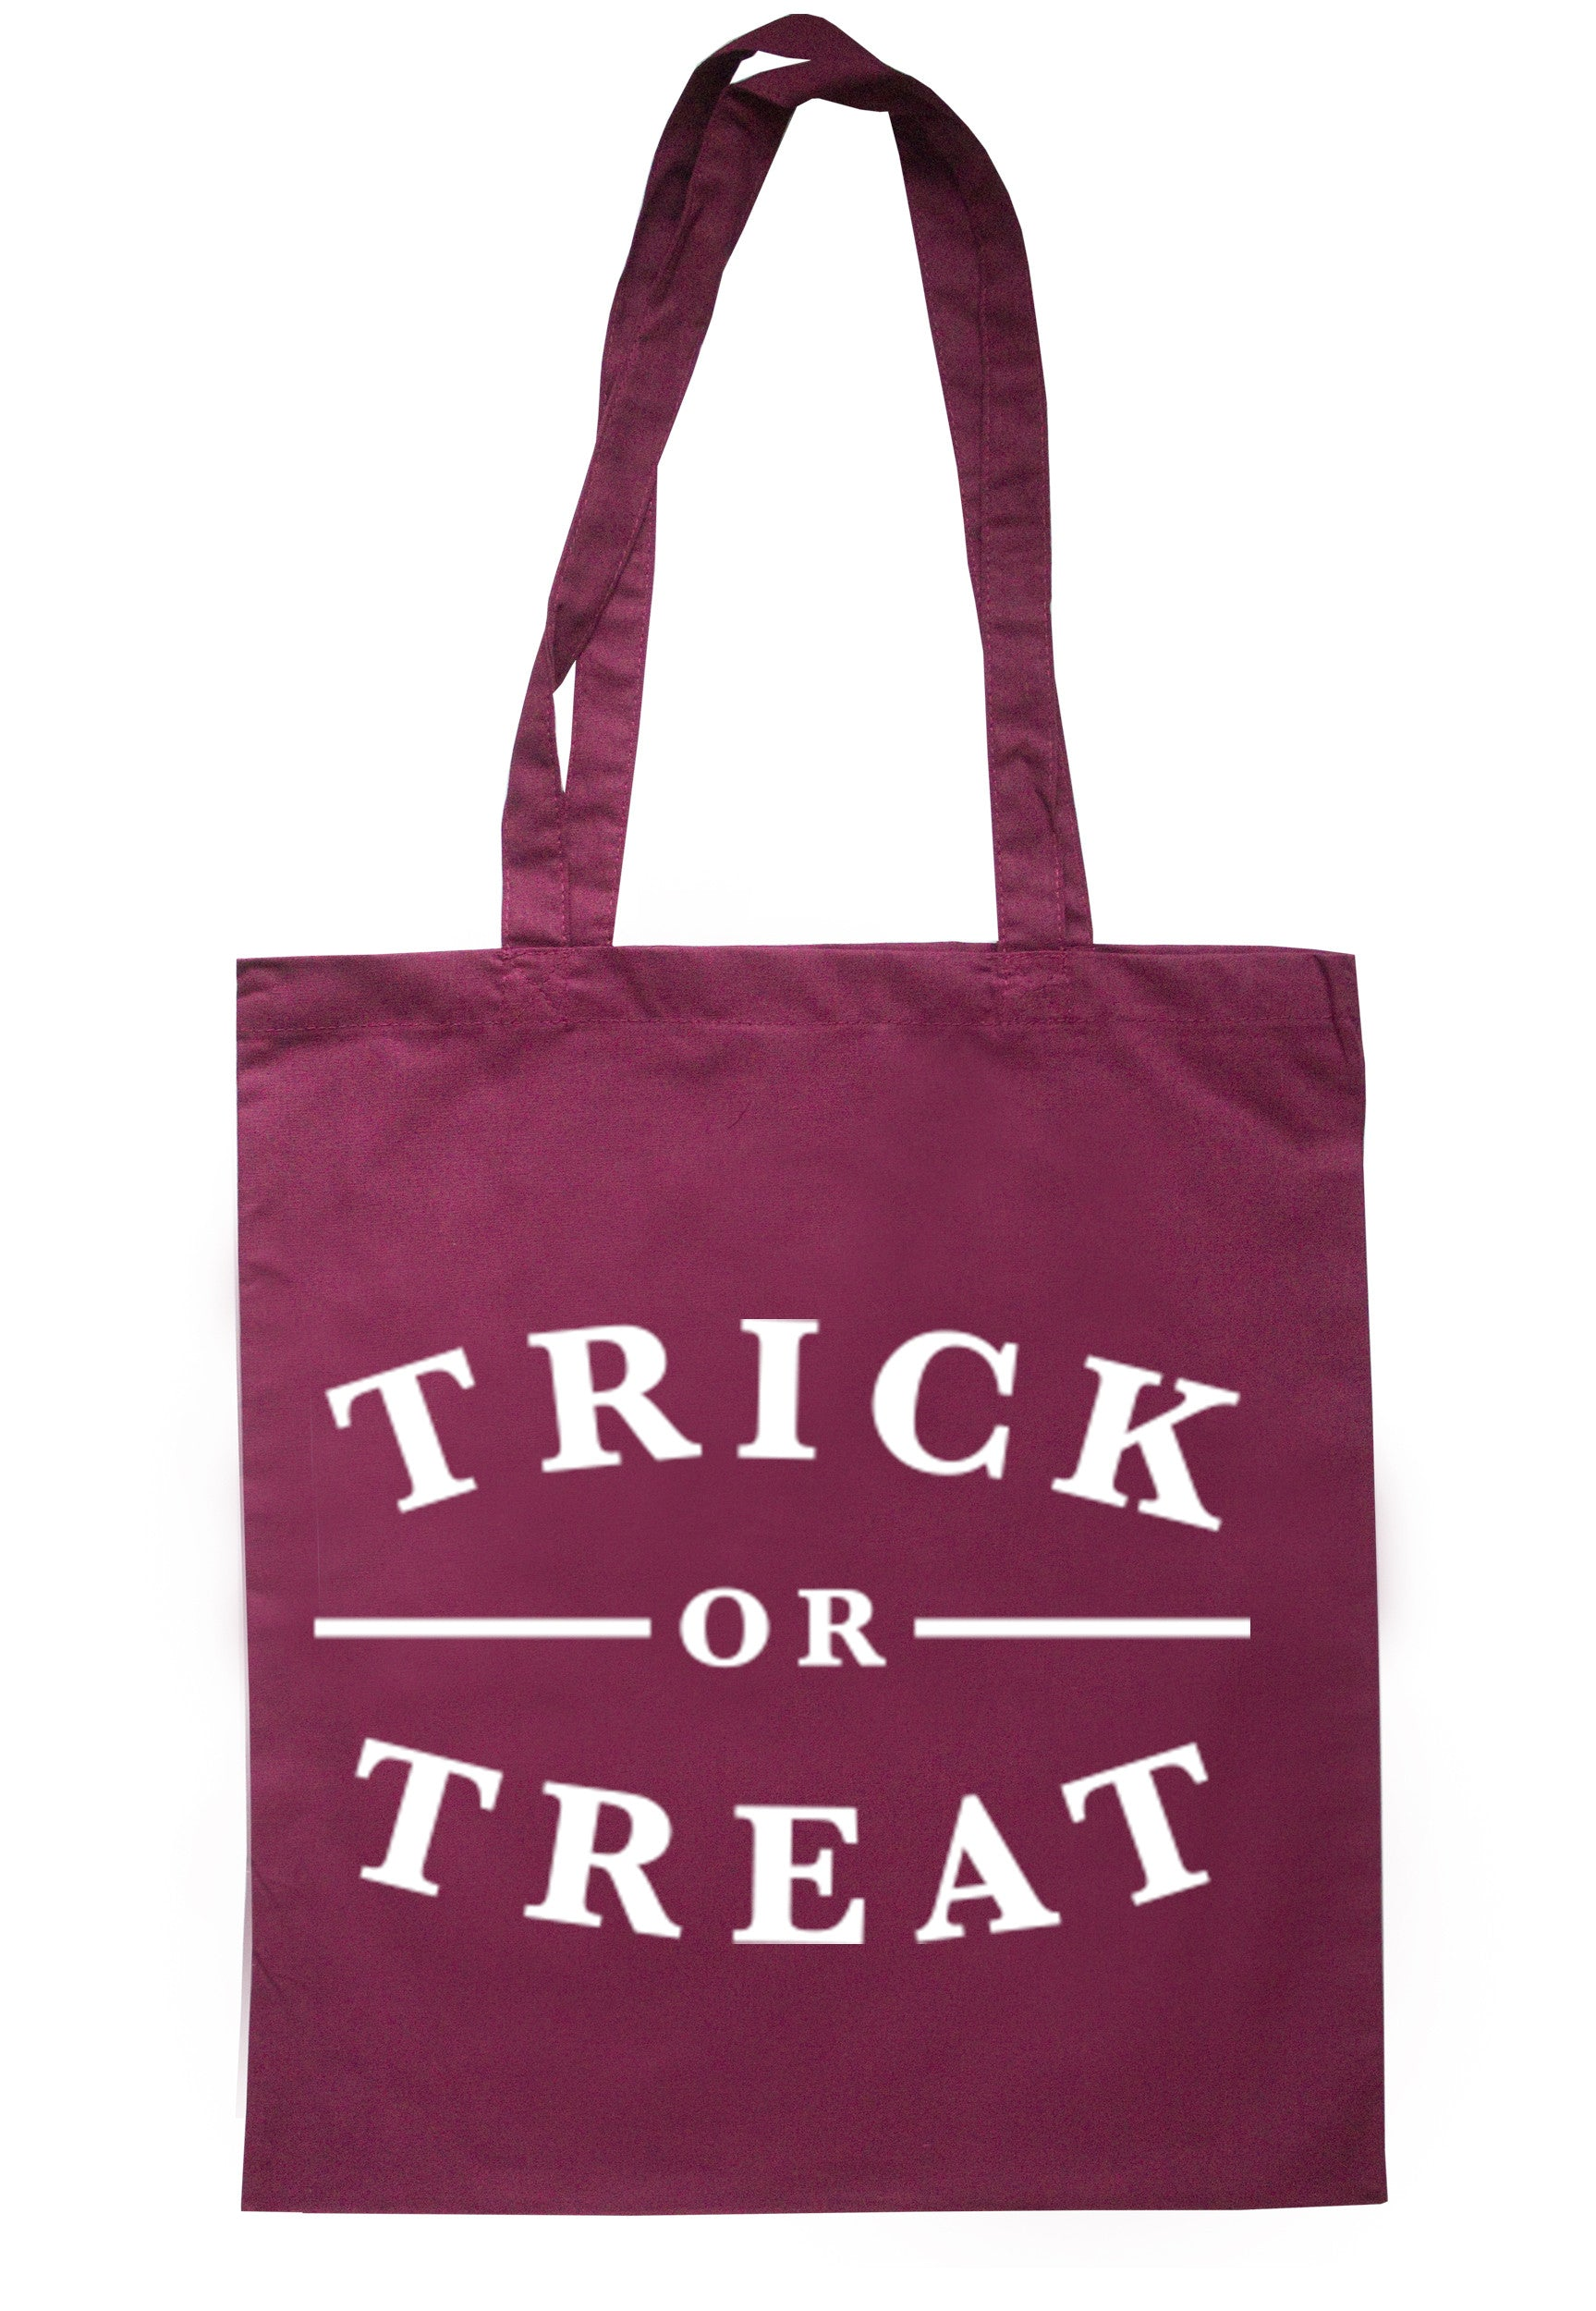 Trick Or Treat Tote Bag TB0128 - Illustrated Identity Ltd.